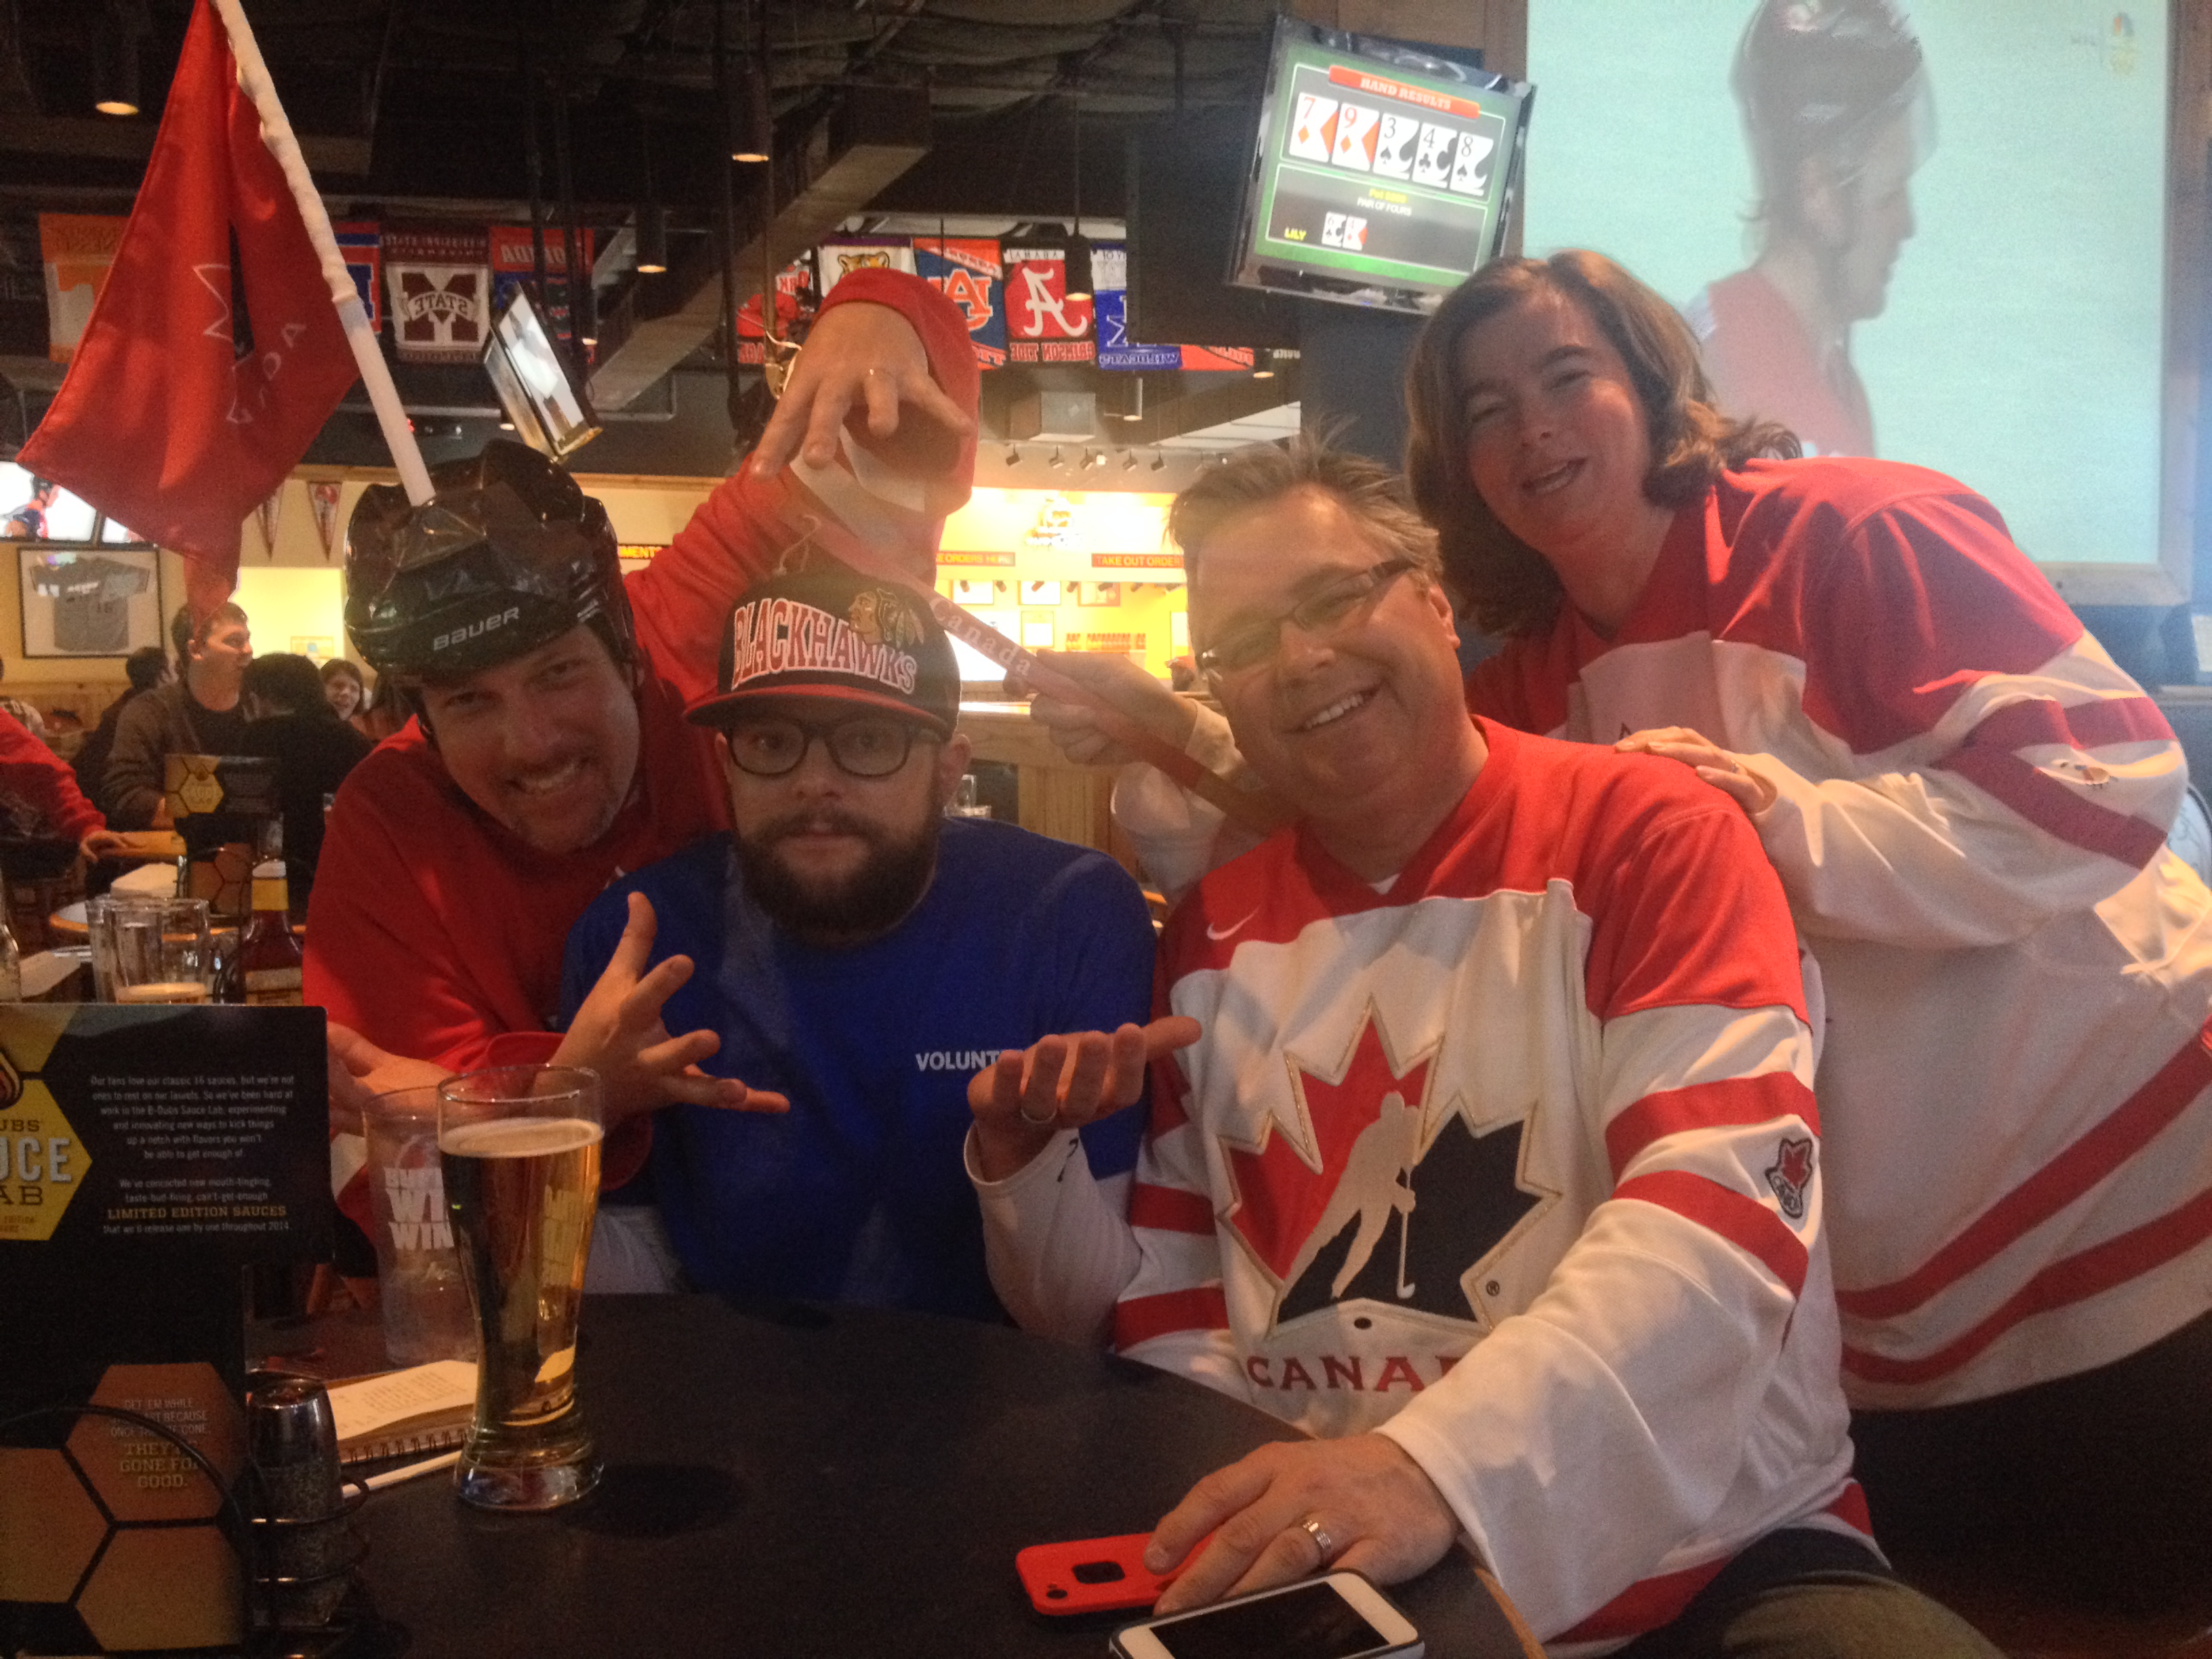 Local hockey fans react to Canada's 1-0 win over USA.